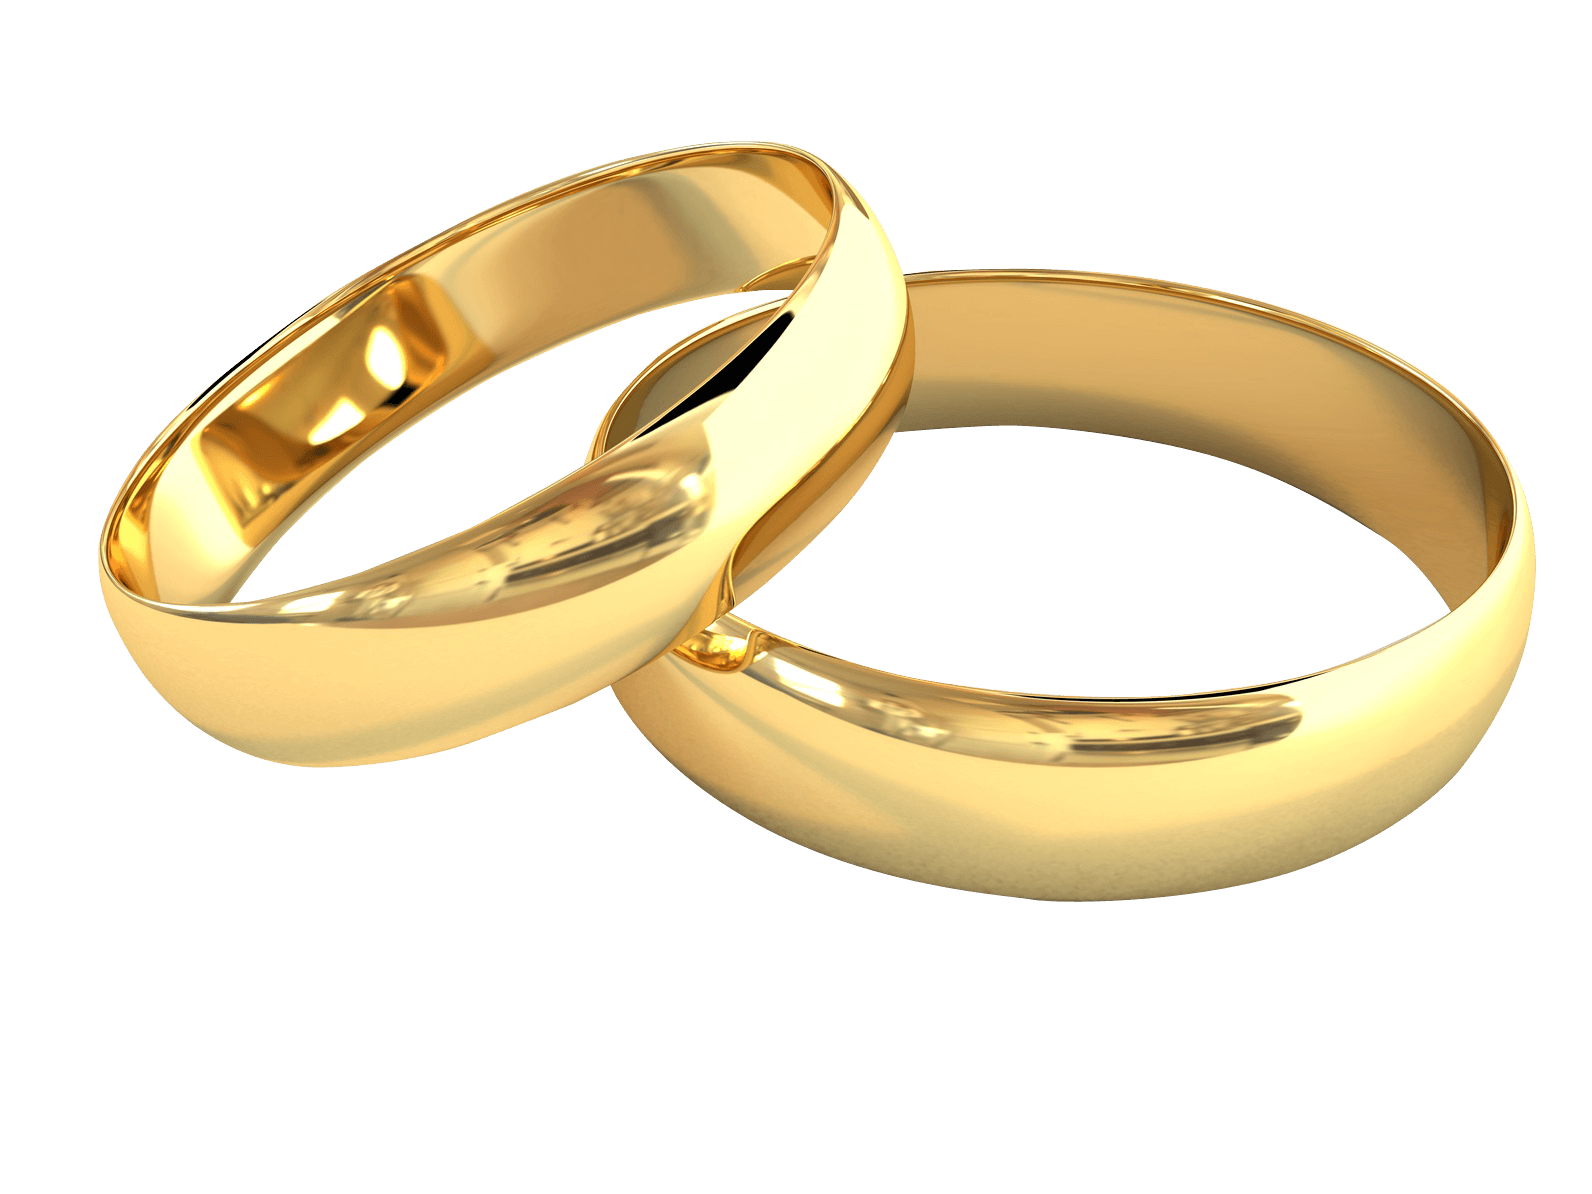 Gold wedding rings png. Pair of jewelry transparent